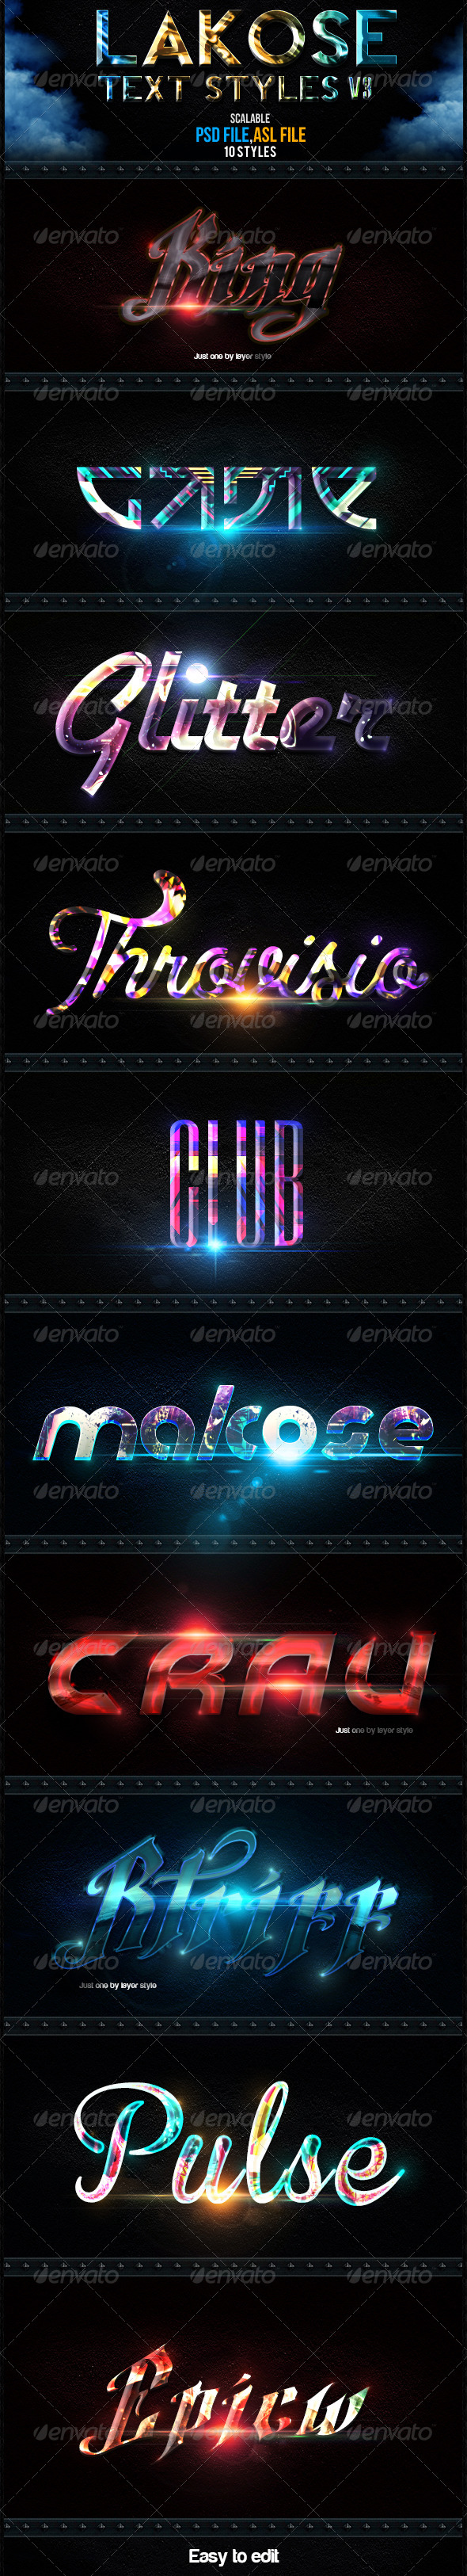 GraphicRiver Lakose Text Styles V3 6332244